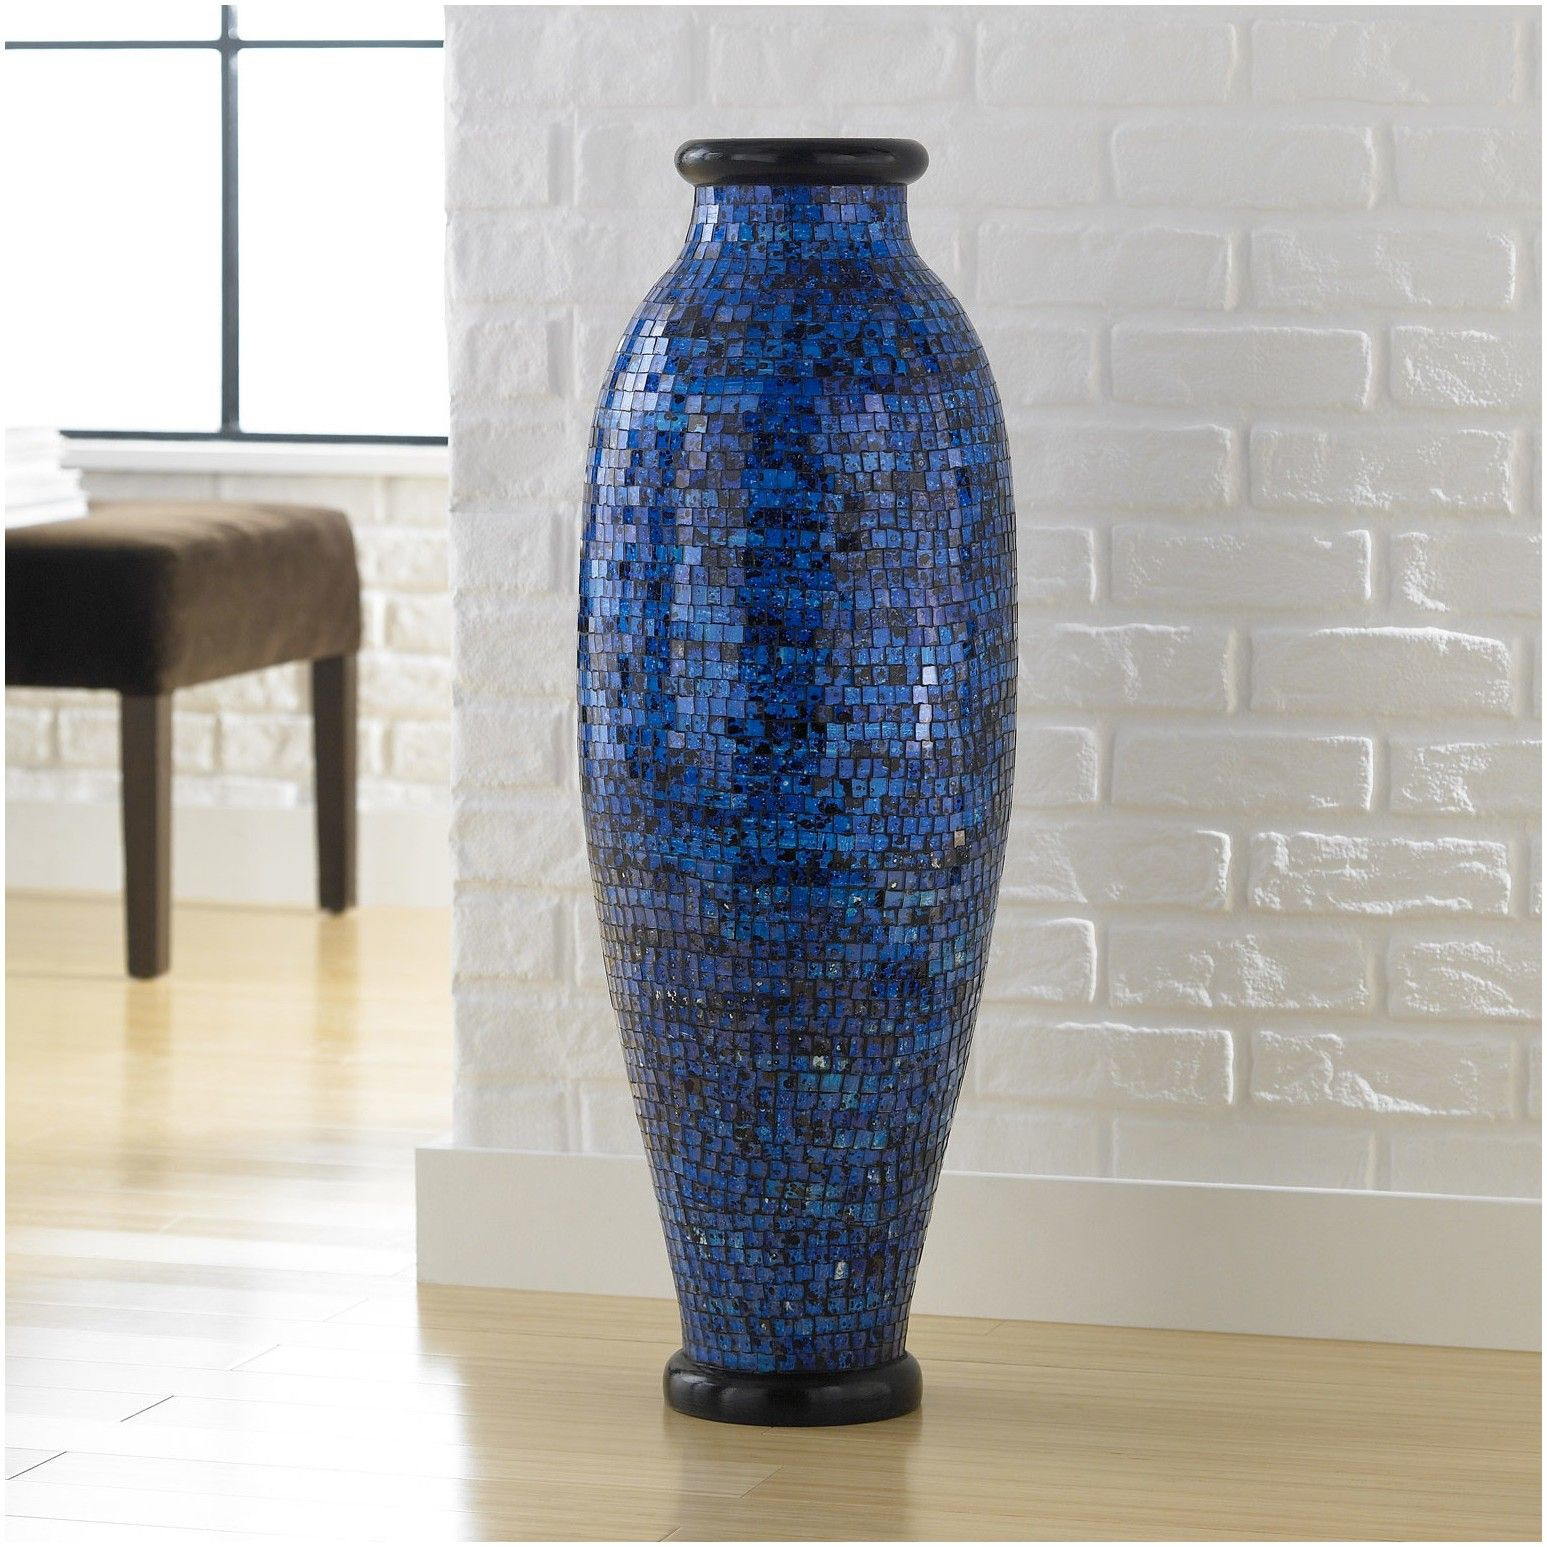 tall decorative vases and urns of large decorative vases and urns fresh 21 beau decorative vases in large decorative vases and urns fresh 21 beau decorative vases anciendemutu